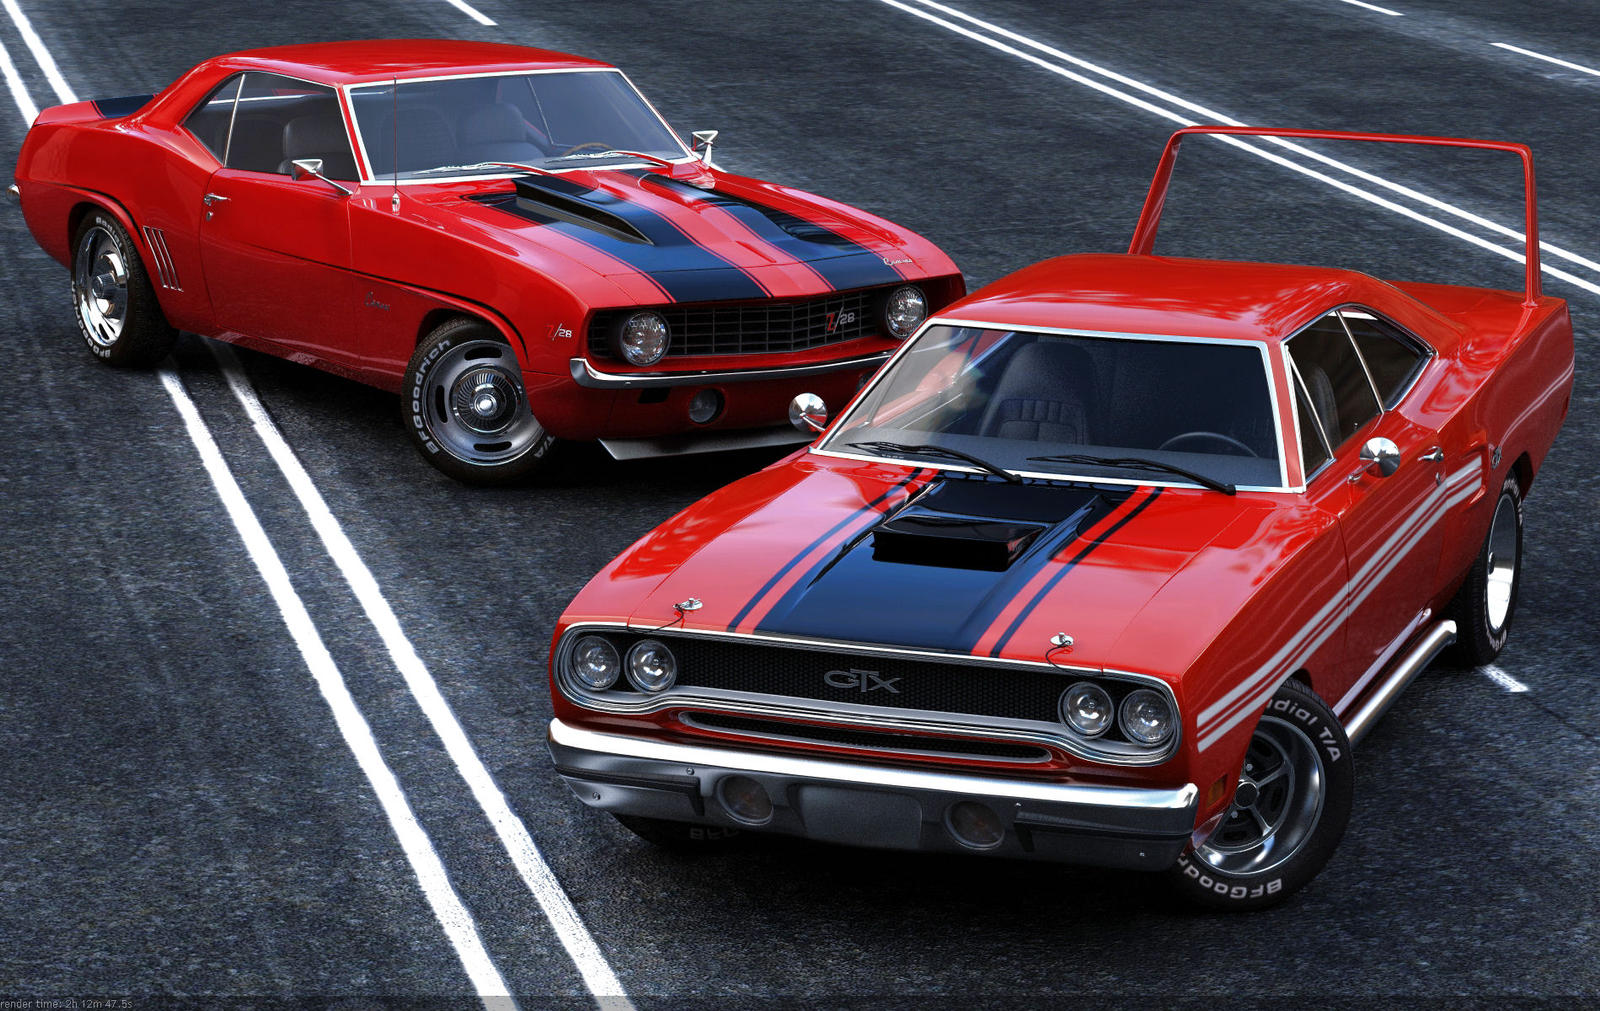 Muscle cars by Missionaryrdr on DeviantArt